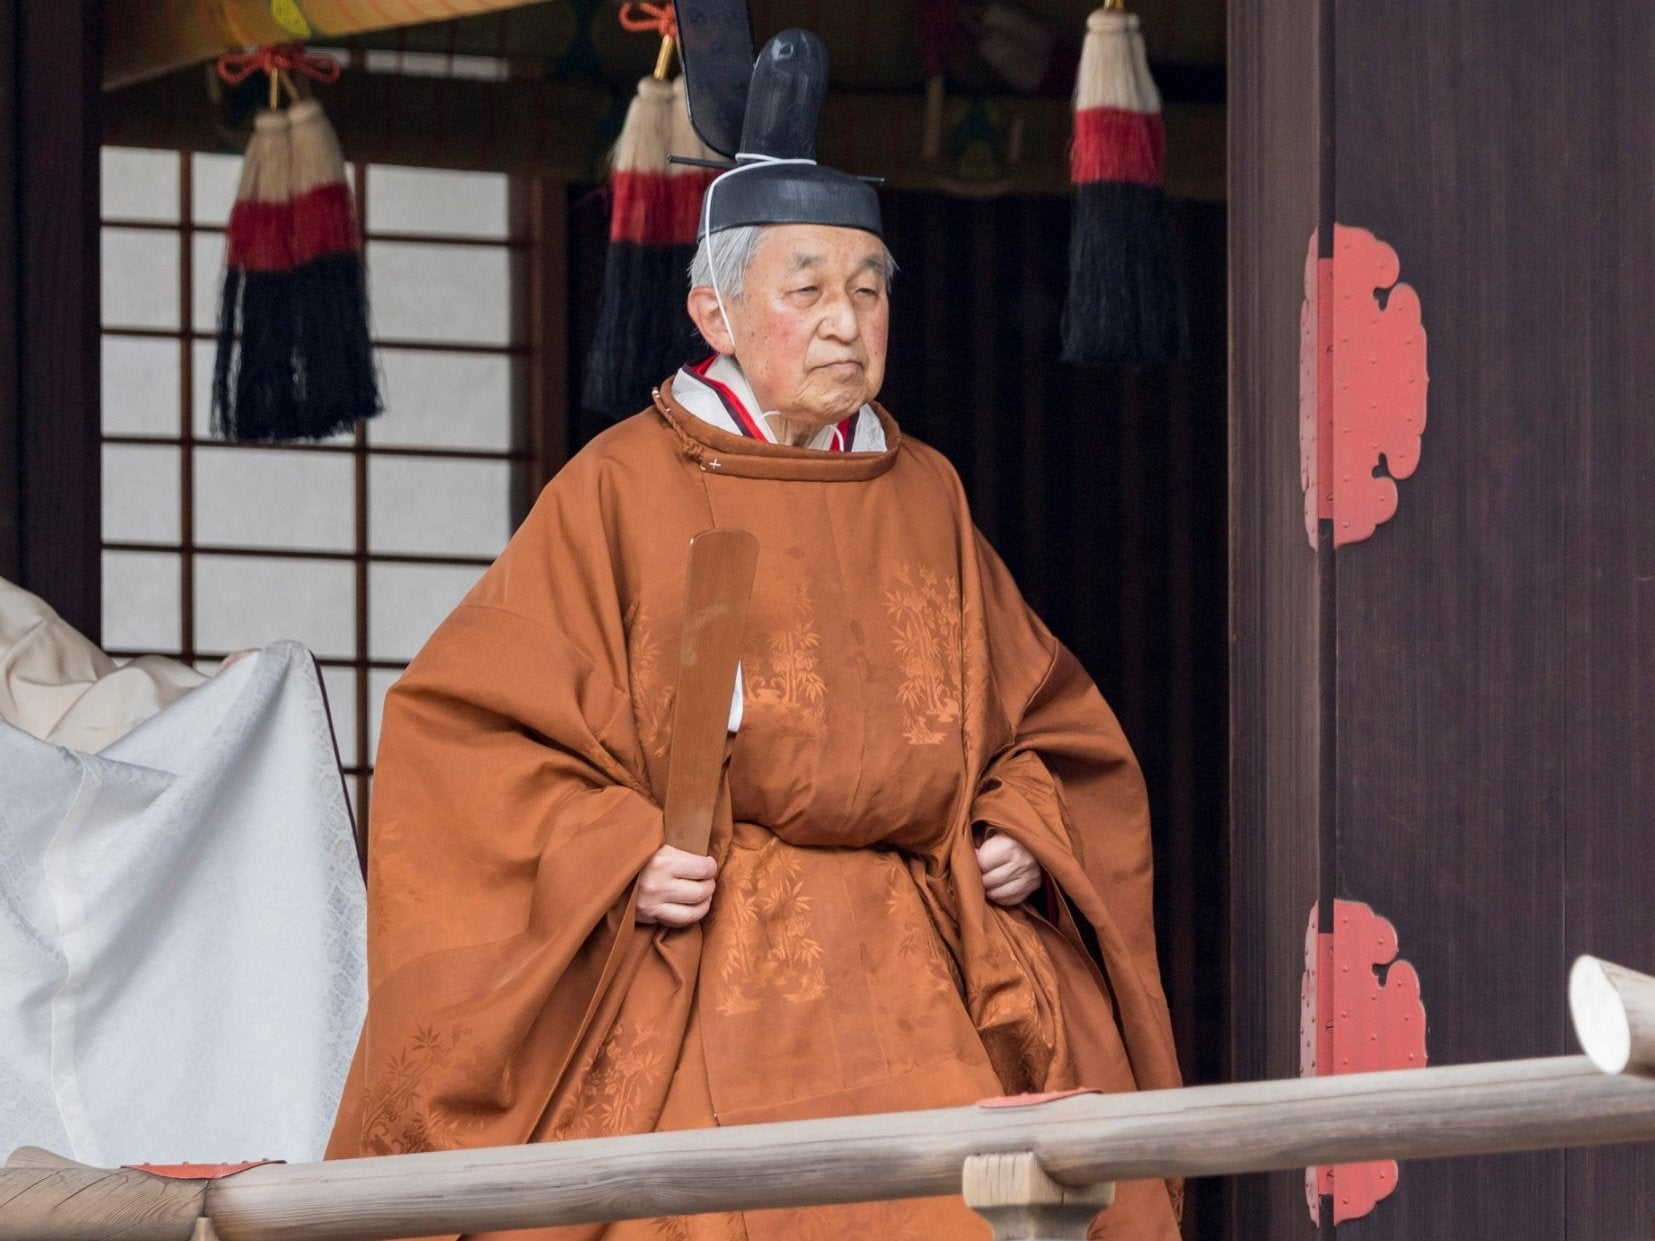 The abdication of Emperor Akihito is making Japanese people rethink